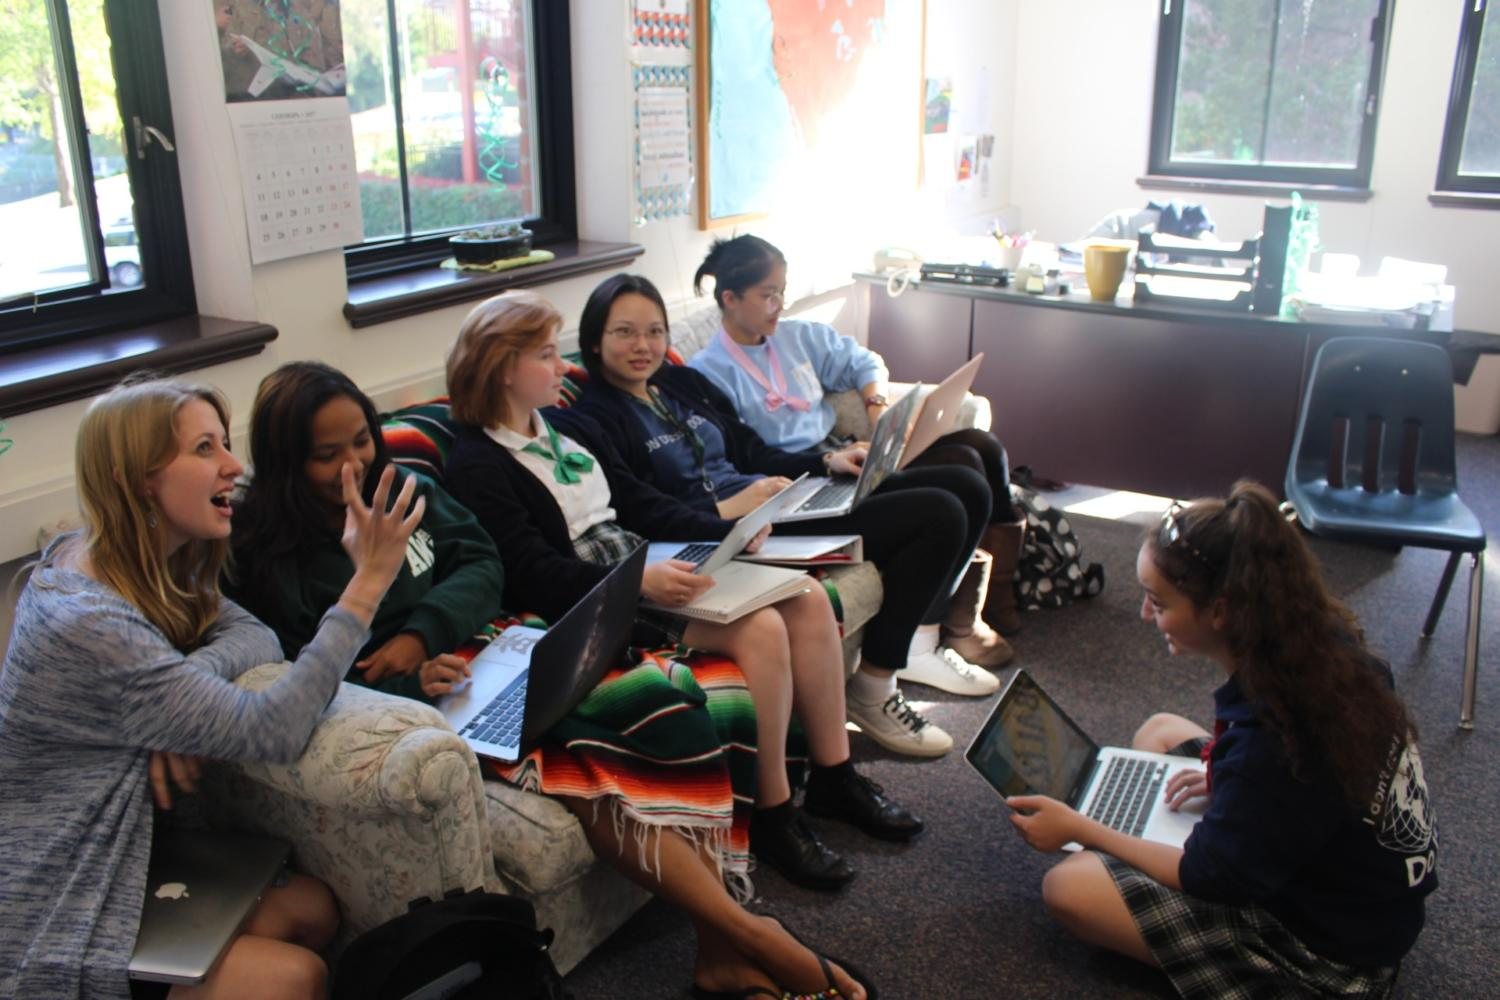 The Model UN activity group plans the details of the debate between the mayoral candidates.